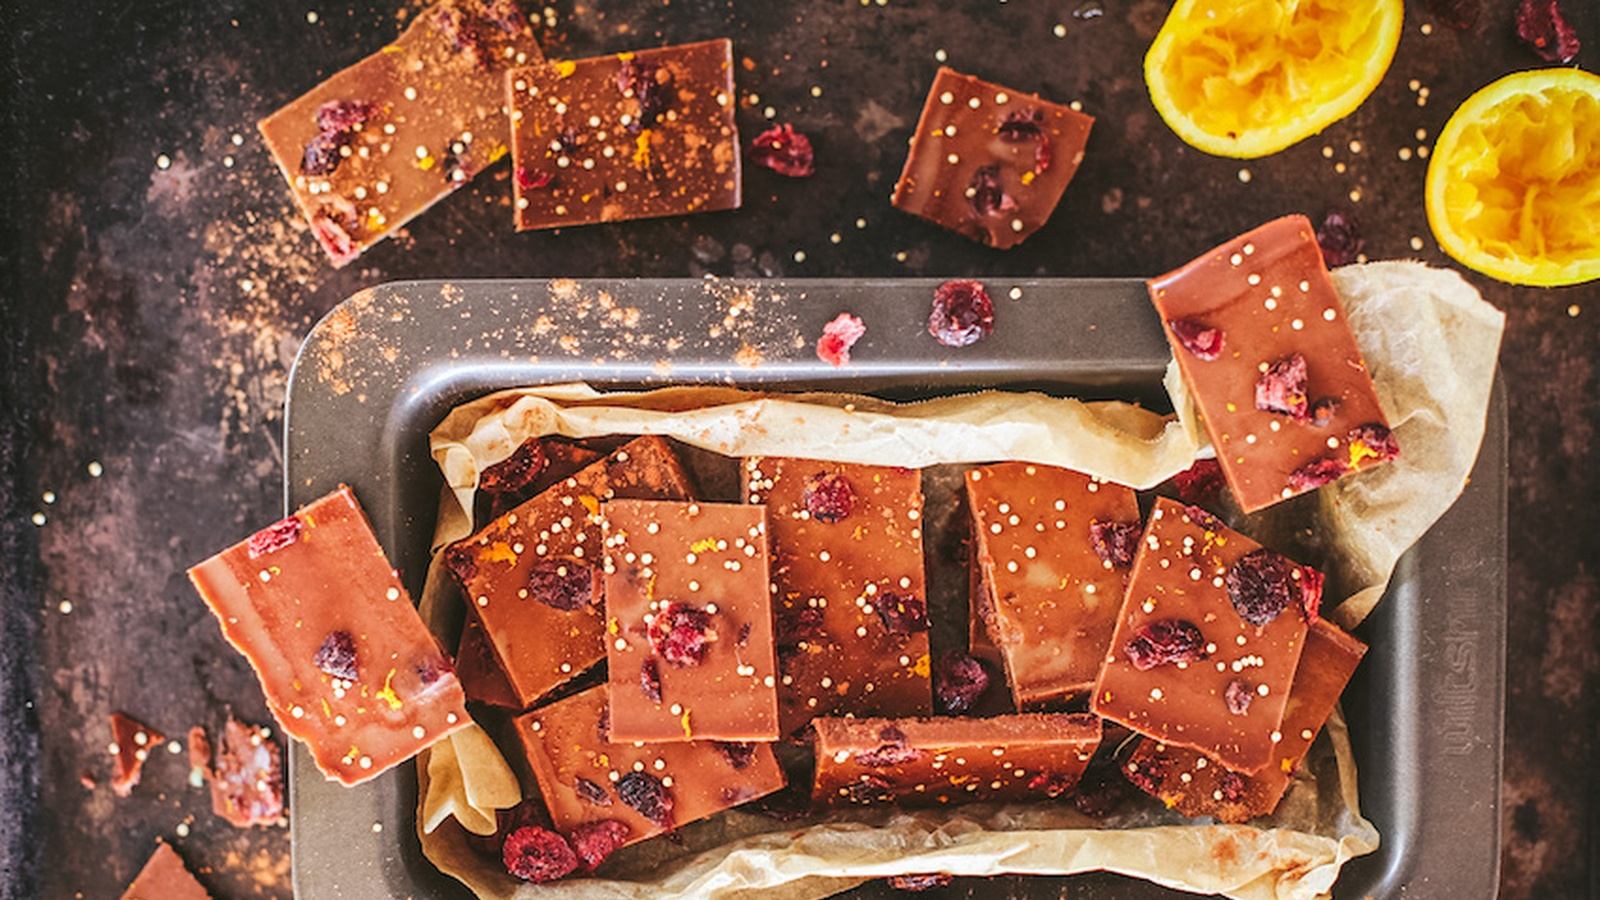 Butter Chocolate With Cranberry & Orange